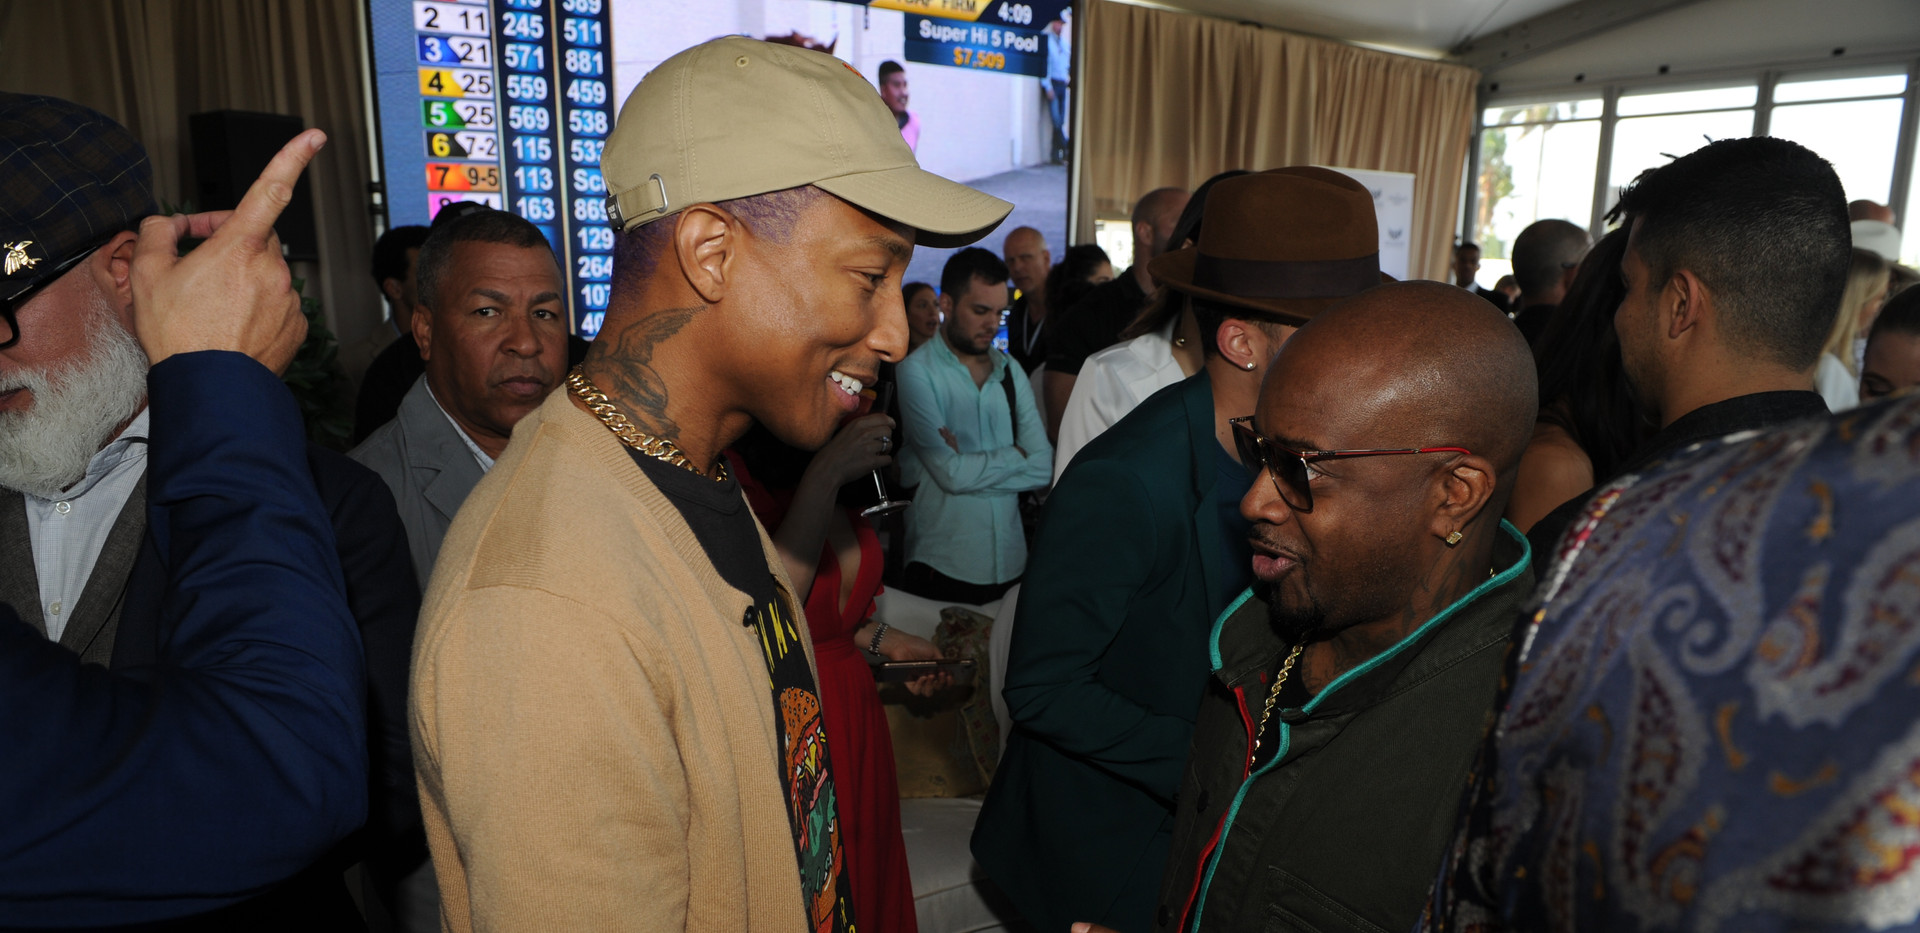 Pharrell Williams & Jermaine Dupri catch